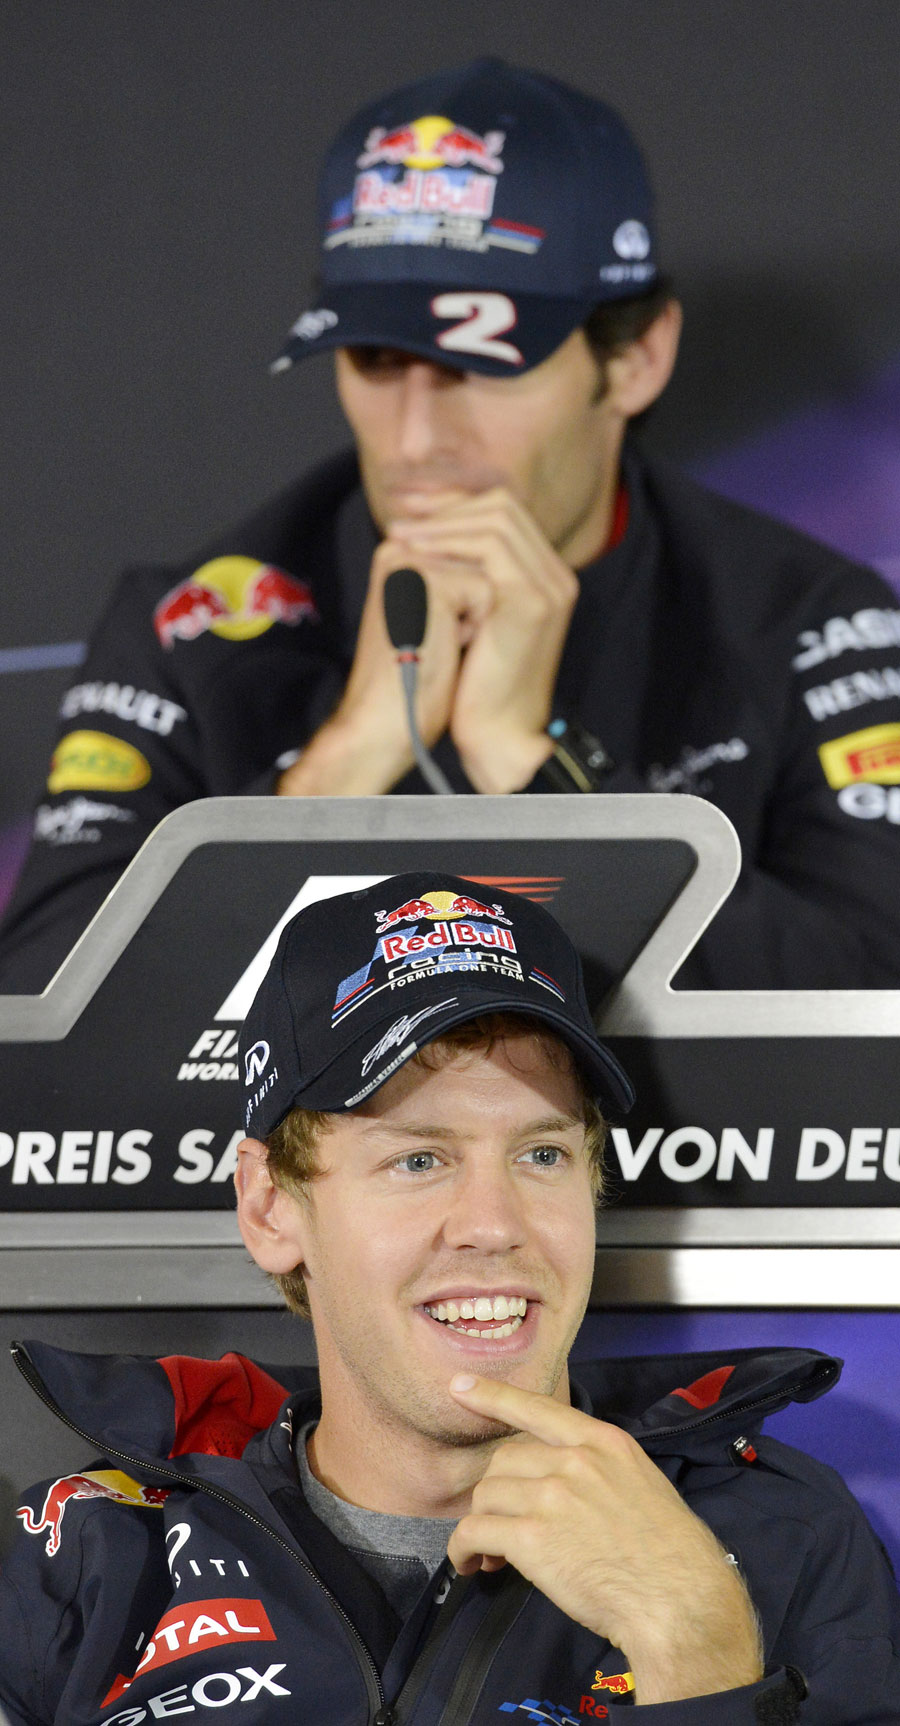 Mark Webber and Sebastian Vettel in the drivers' press conference